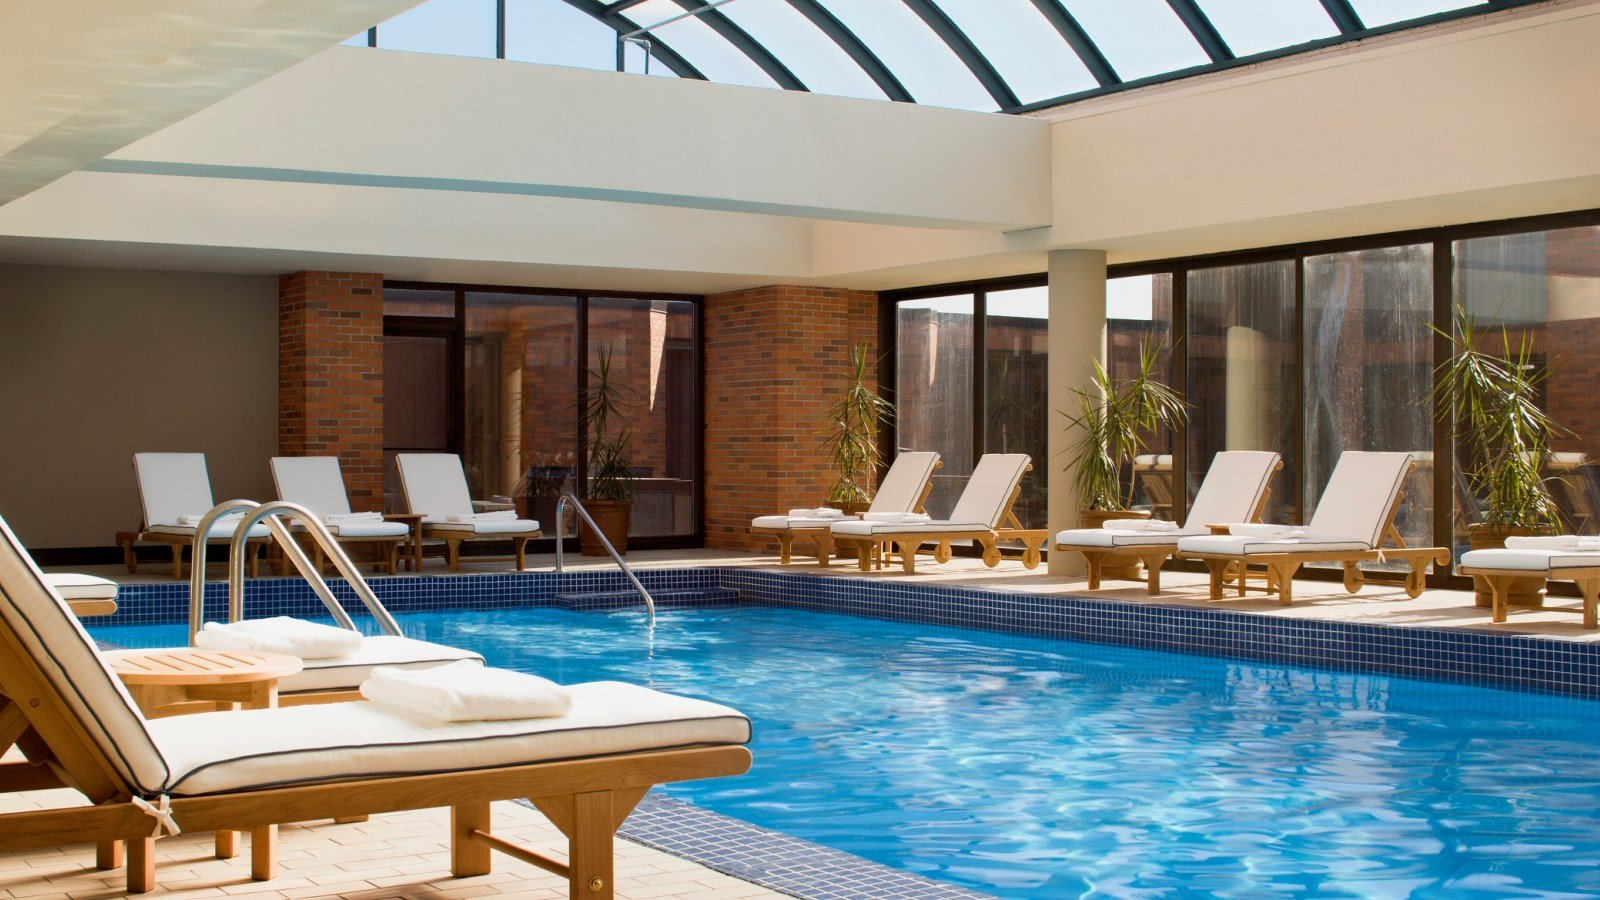 Toronto Hotel Features - Pool